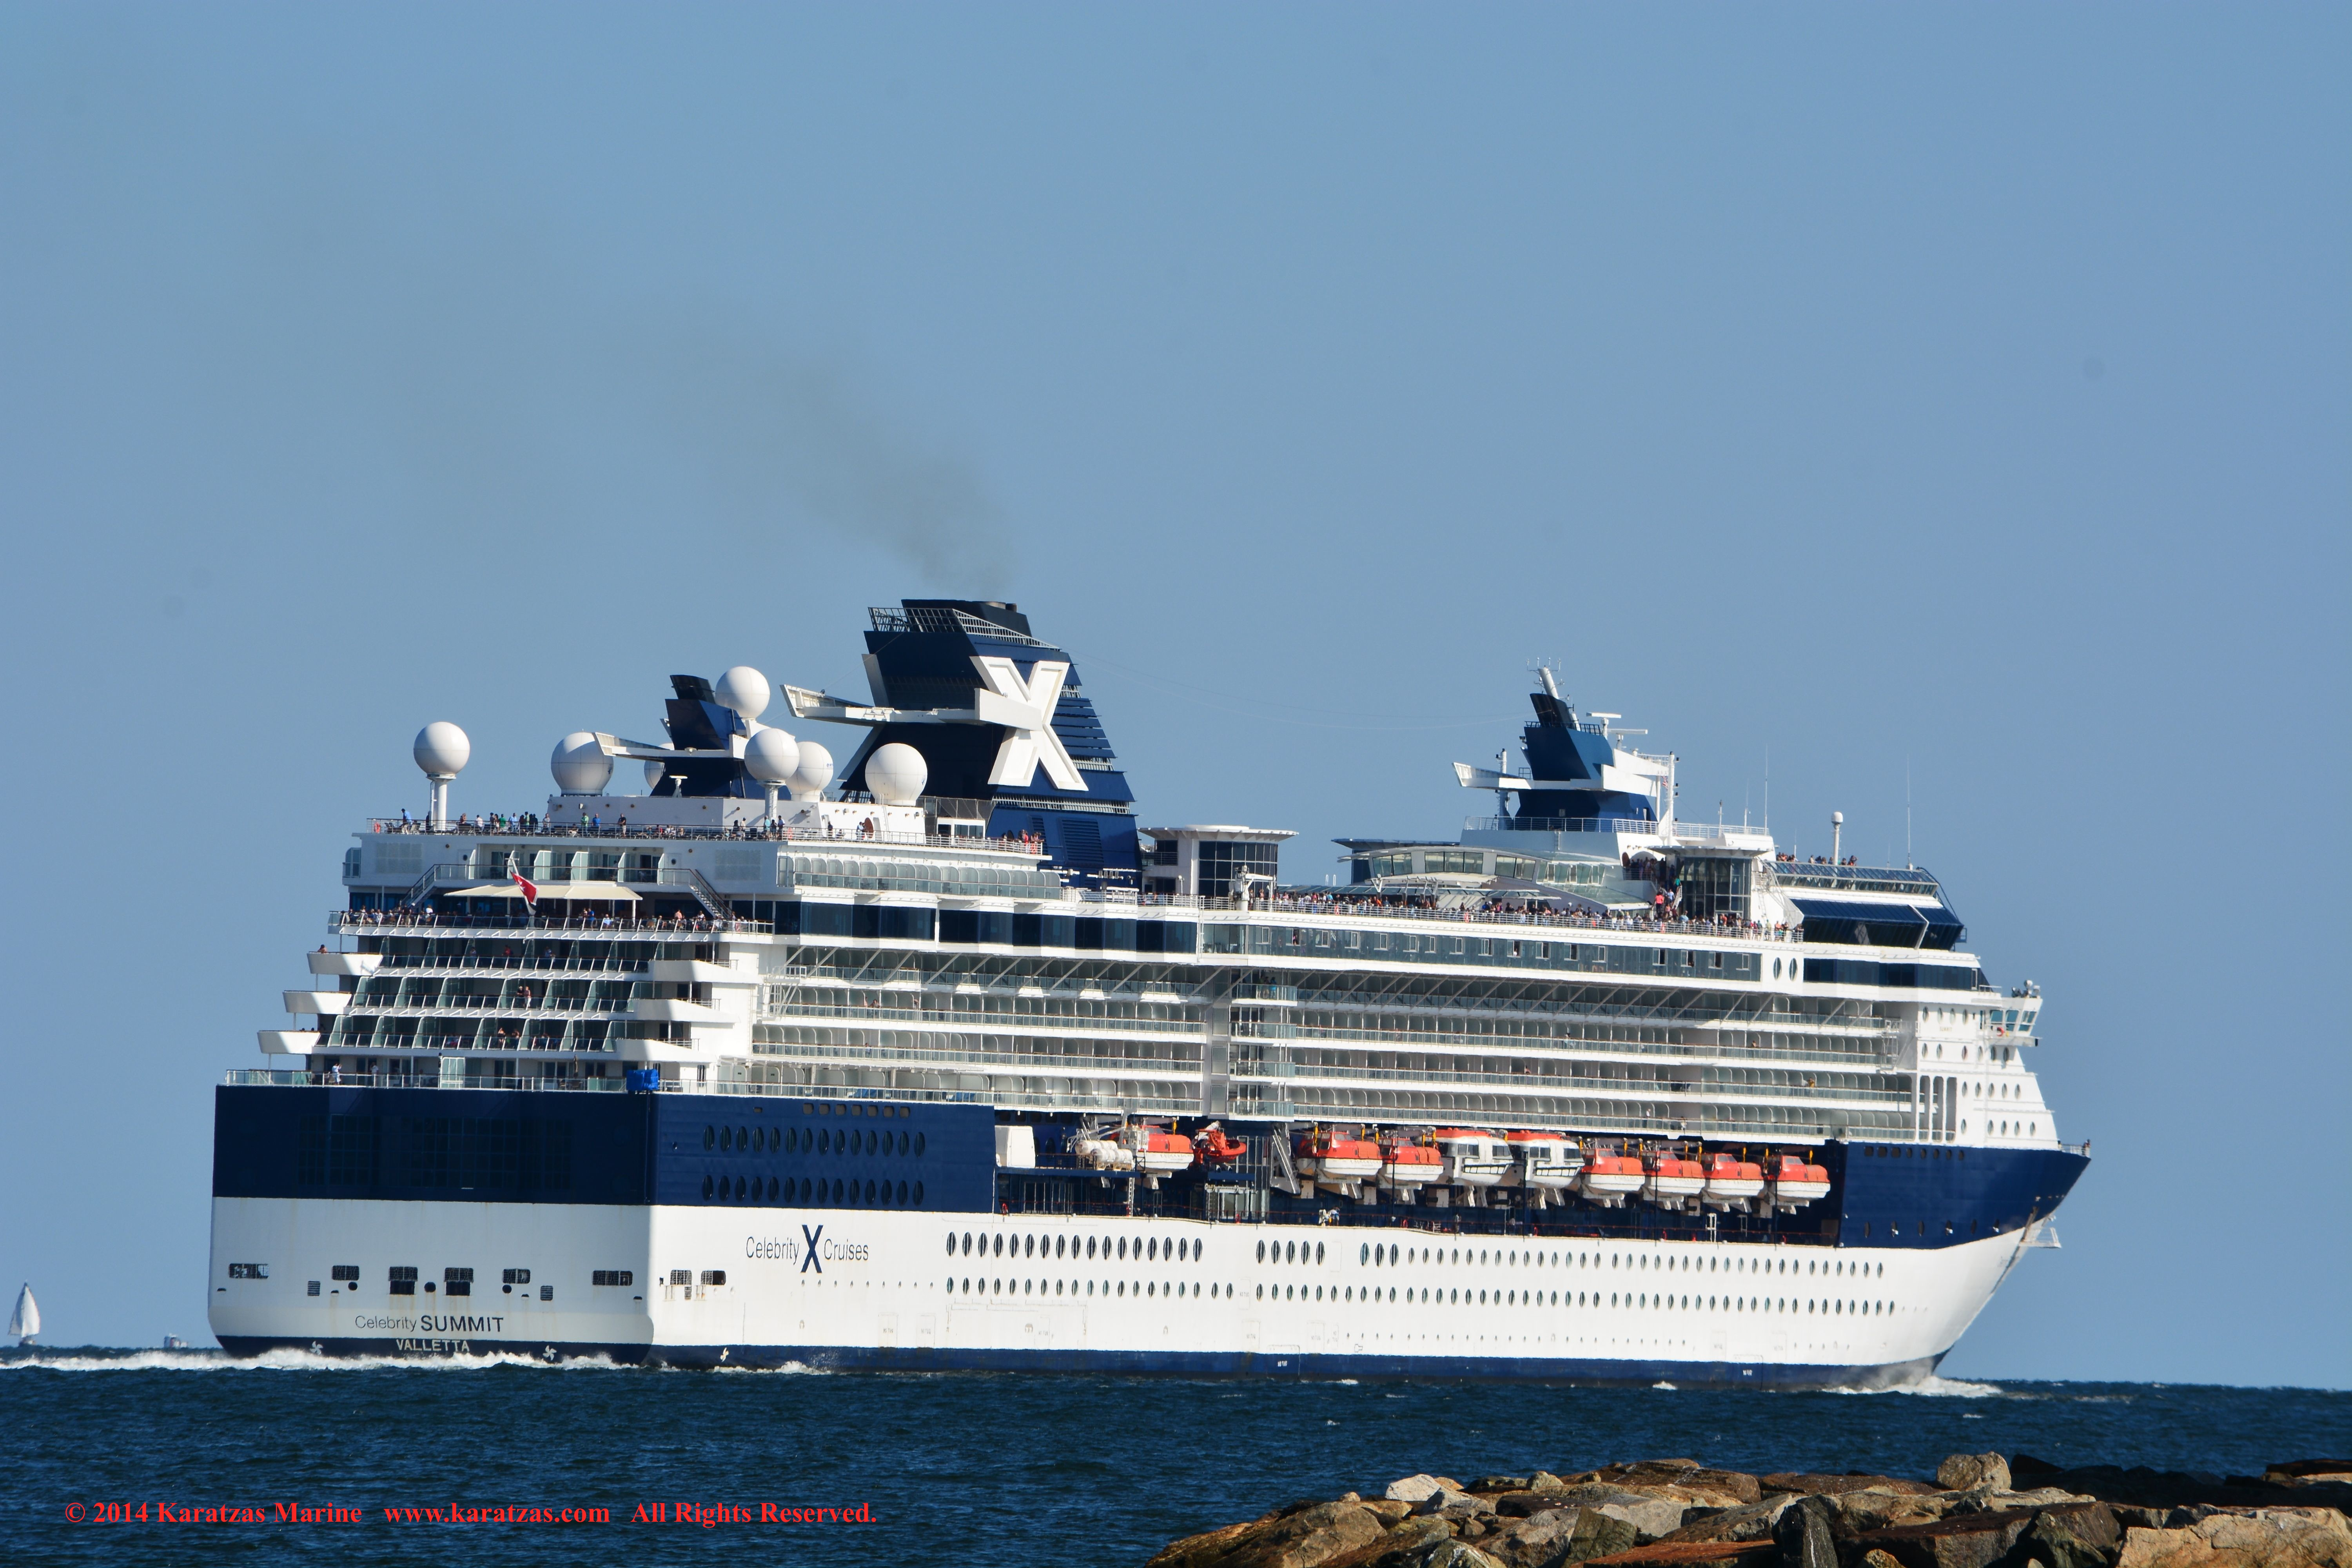 Celebrity Summit Overview - Cruise Web